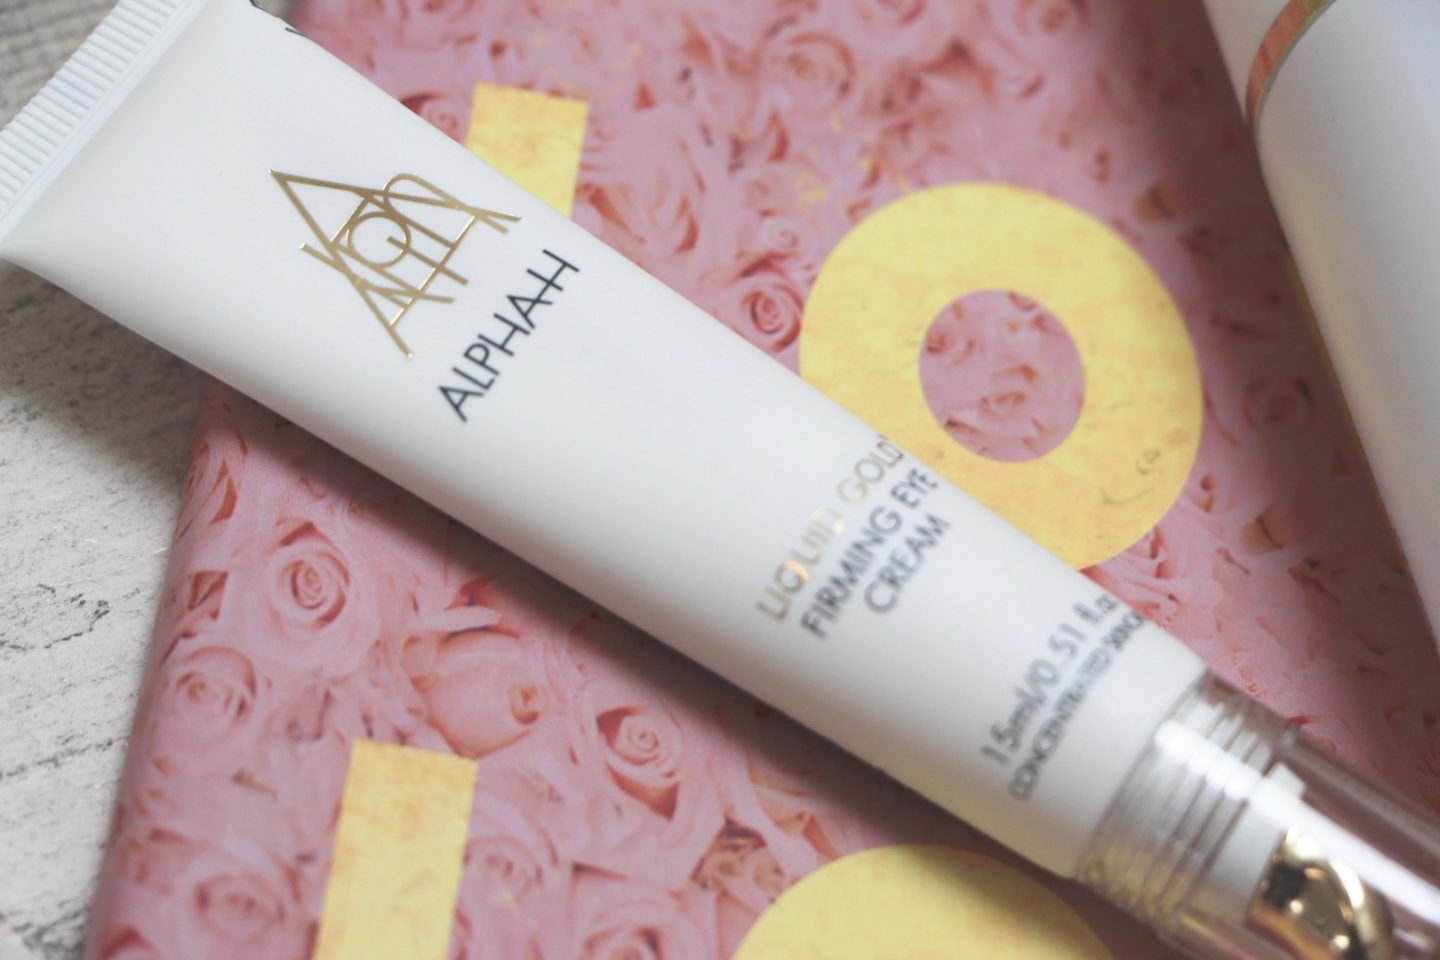 alpha-h liquid gold firming eye cream